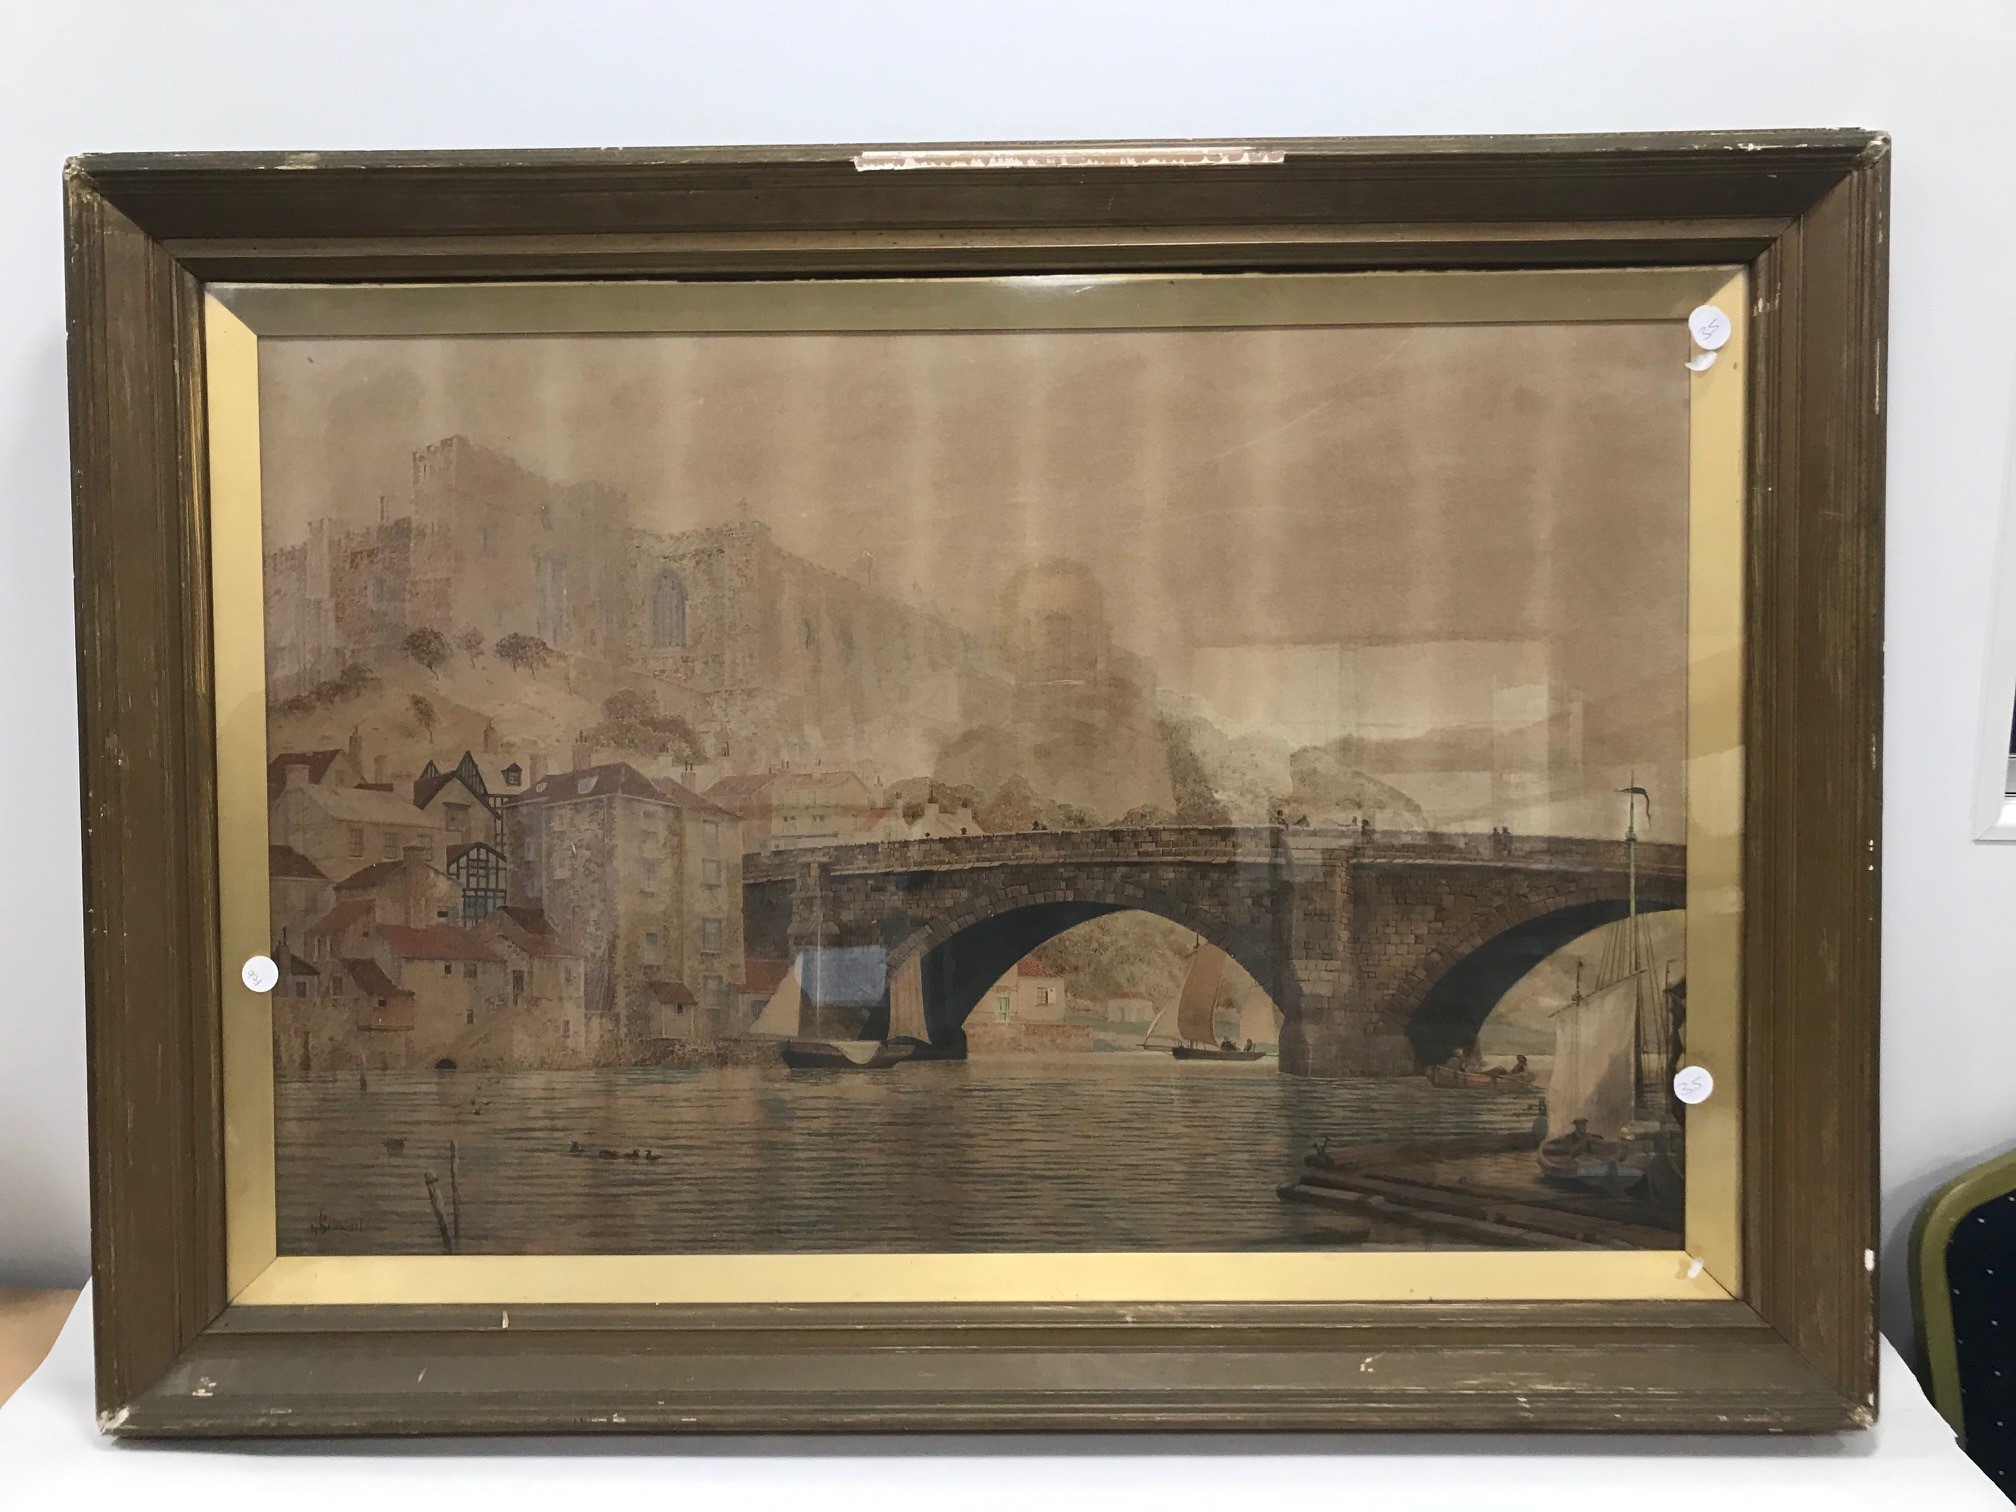 James Lawson Stewart (1841-1929) large British school watercolour on paper, riverside scene with - Image 2 of 2